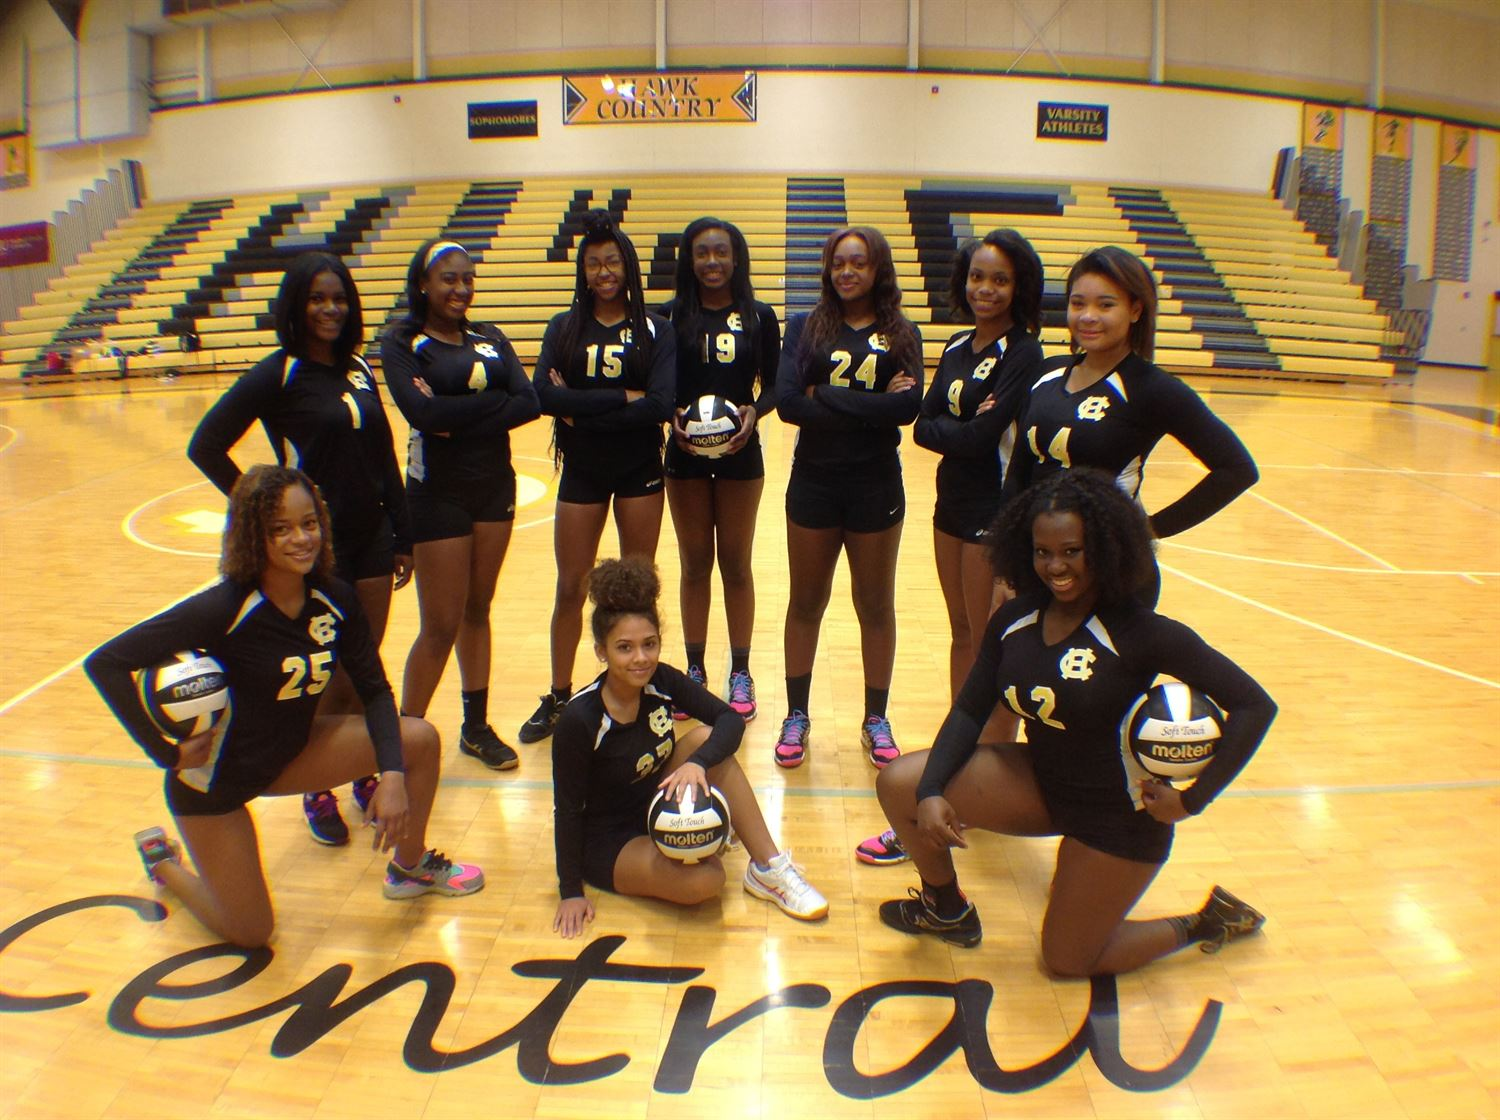 Hazelwood Central High School - Girls Volleyball